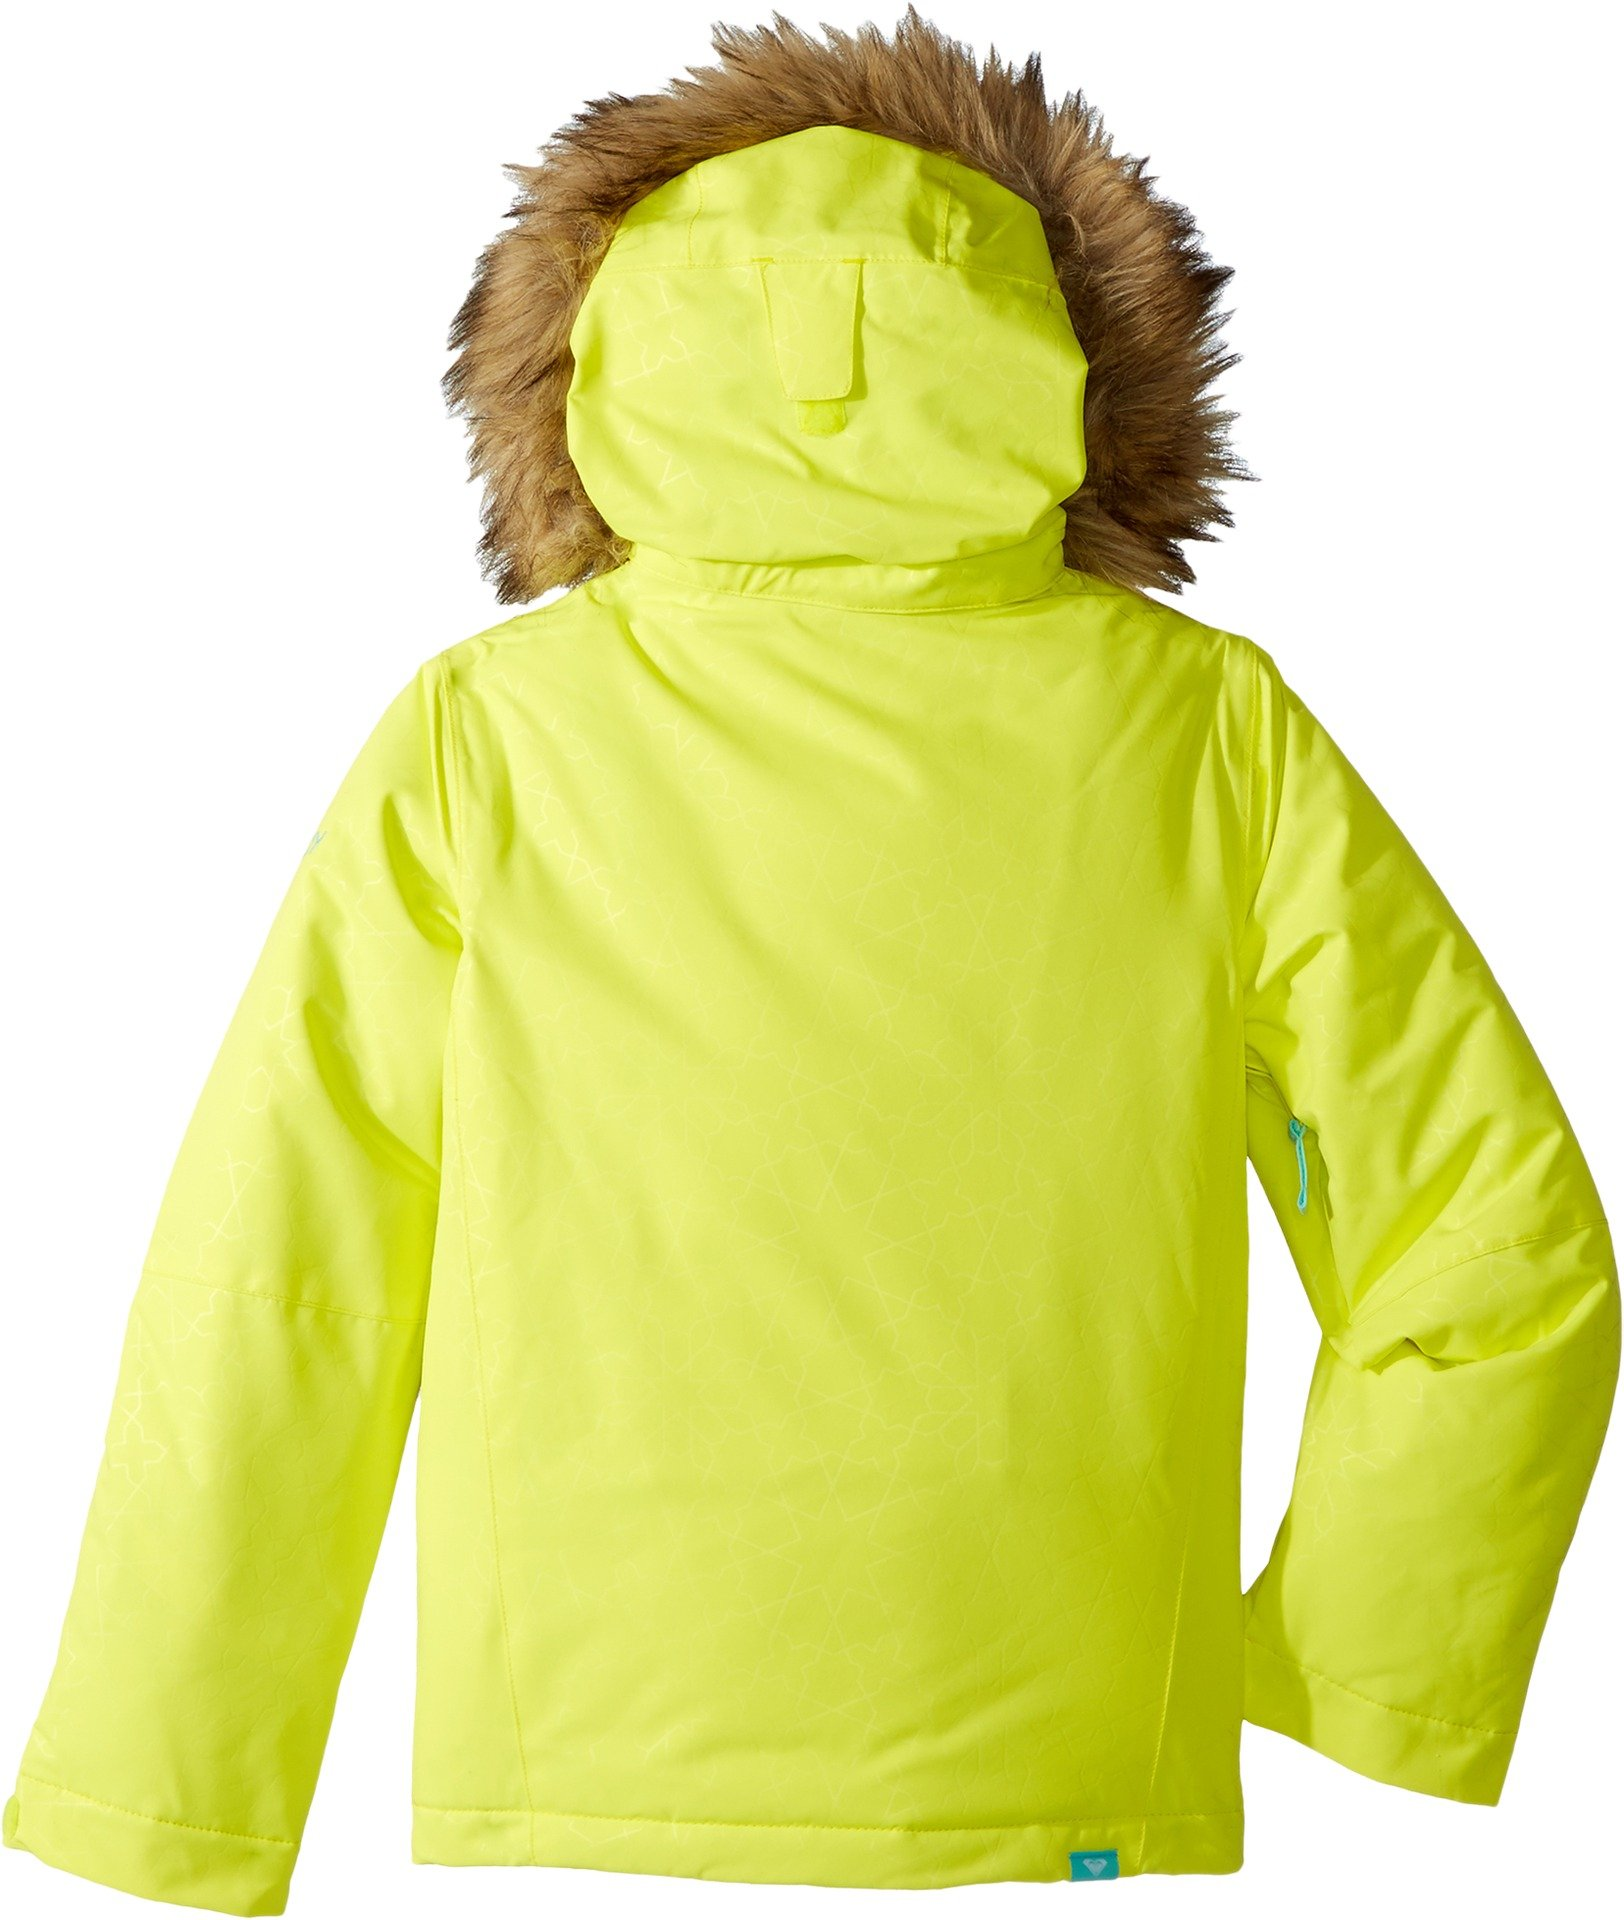 Roxy Big Girls' American Pie Solid Snow Jacket, Lemon Tonic_Gana Emboss, 14/XL by Roxy (Image #2)